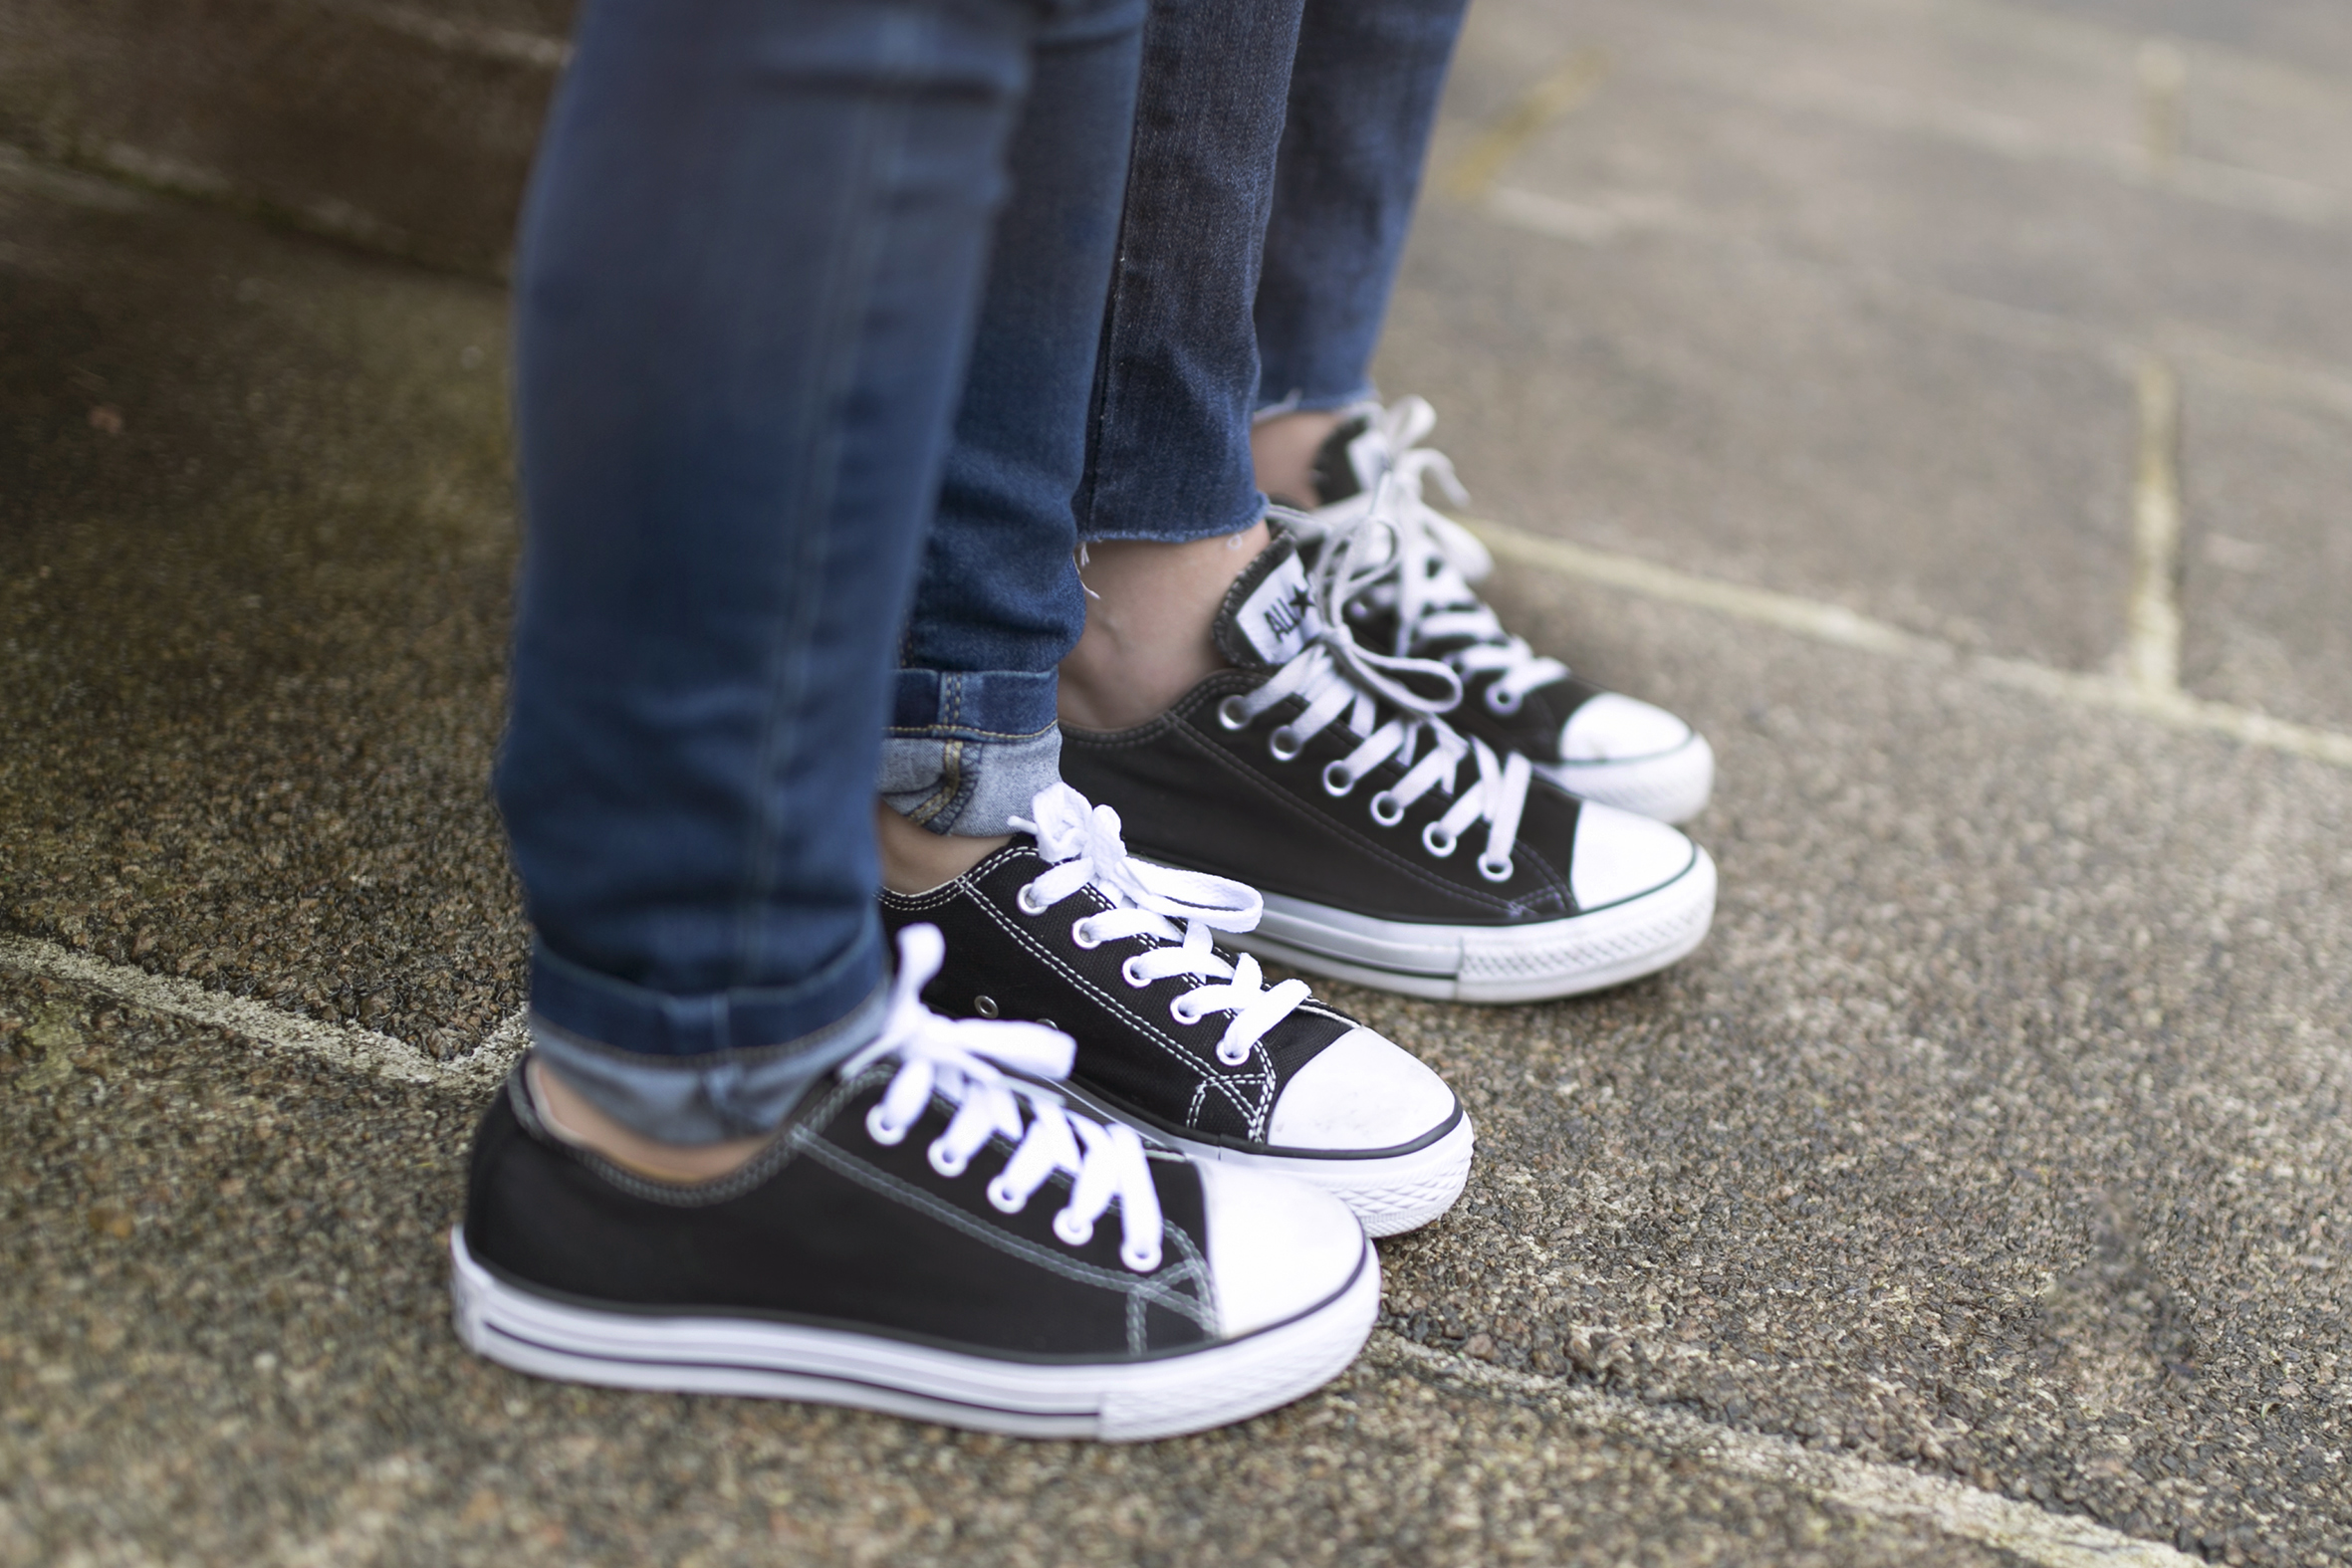 converse-moda-calle-mom and daughter-kids-fashion-denim-minime- streetstyle-descalzaporelparque